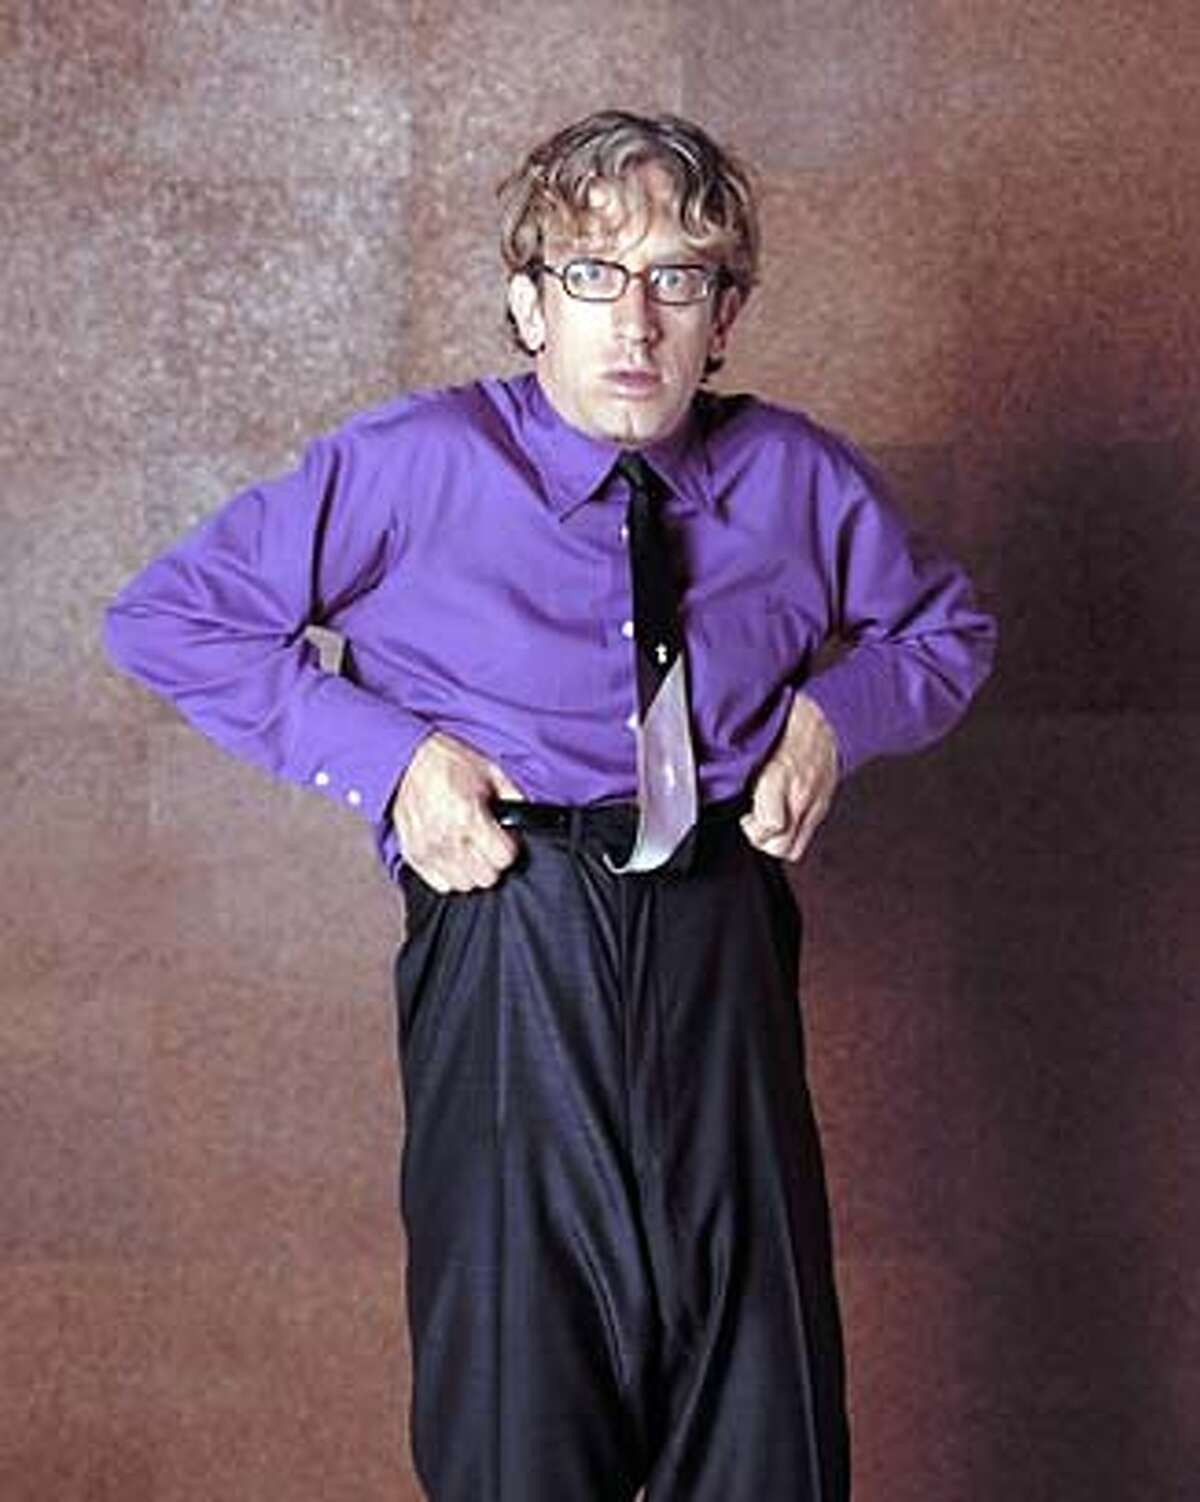 Ran on: 07-18-2004 Andy Dick will perform at Cobbs Comedy Club.